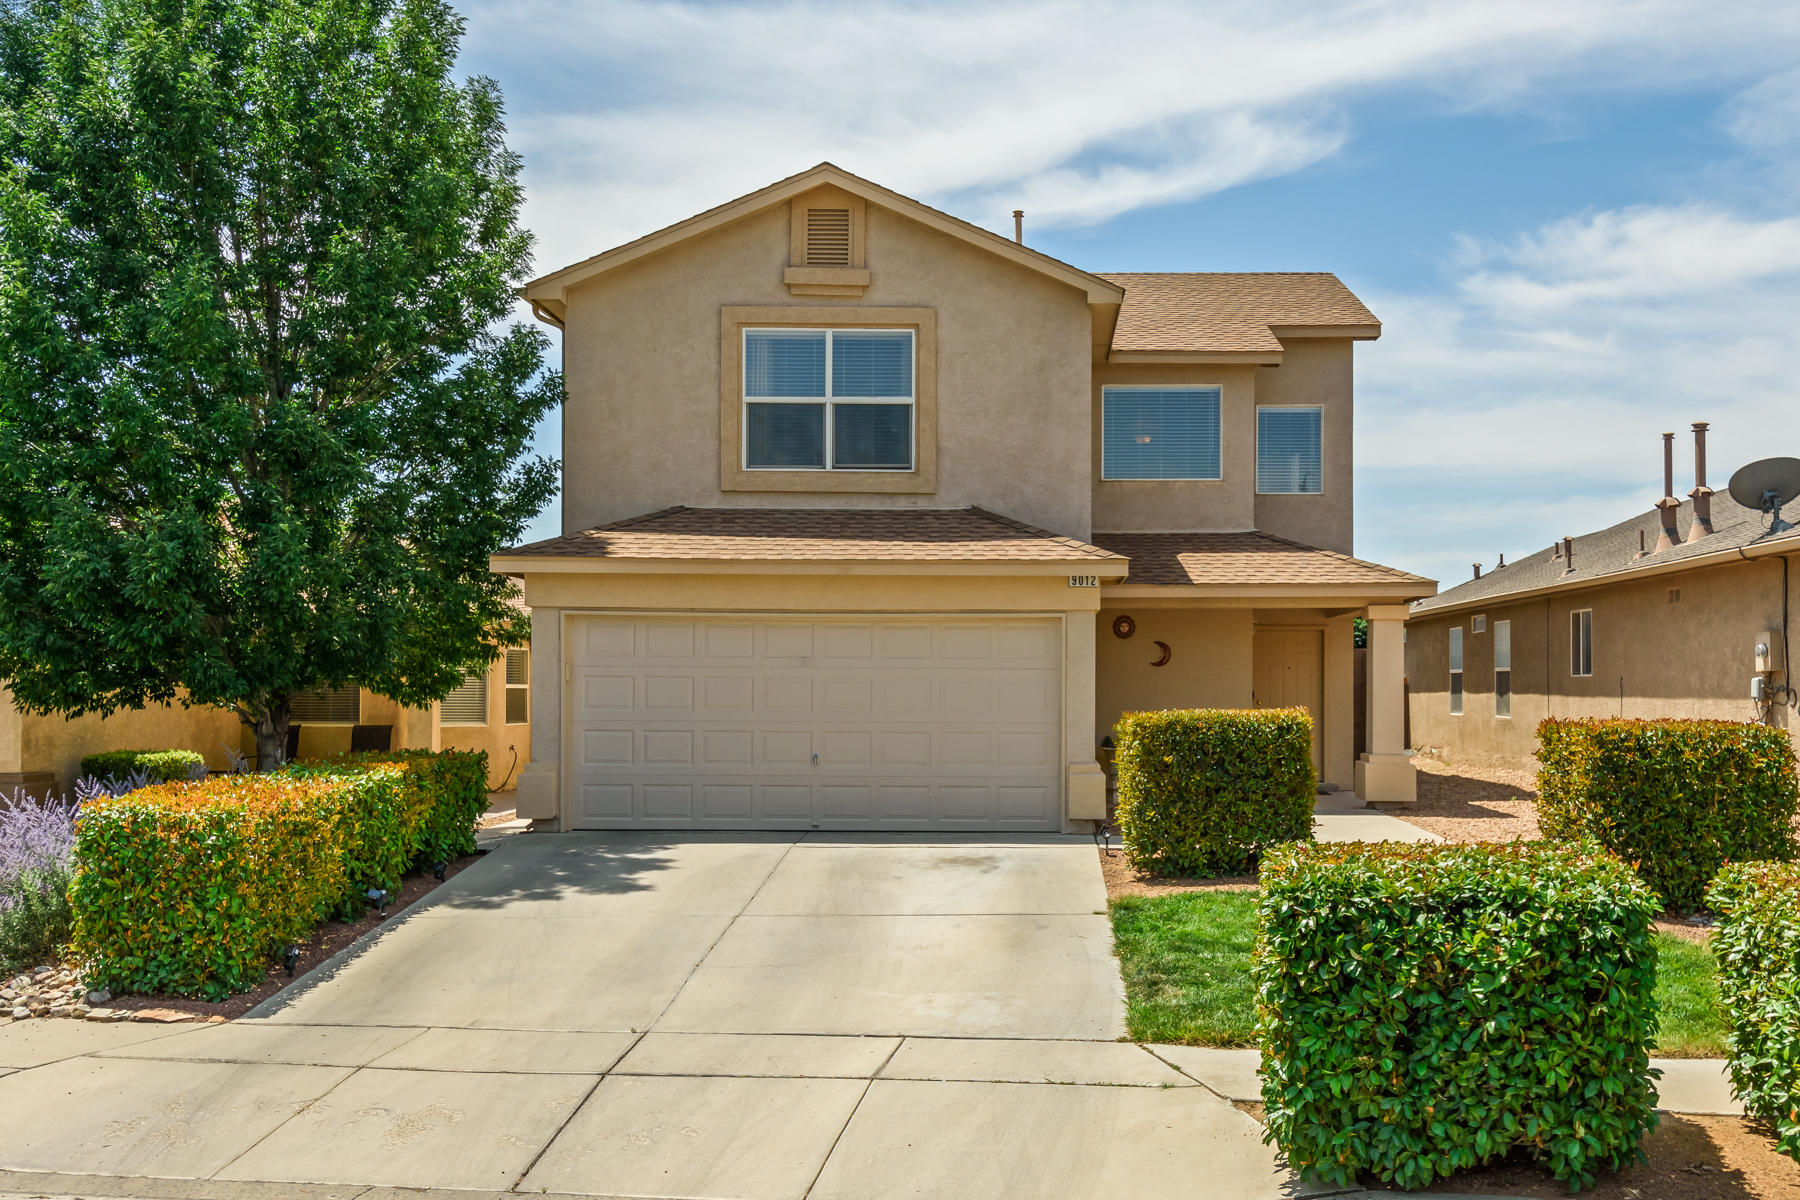 9012 LOWER MEADOW Trail SW Property Photo - Albuquerque, NM real estate listing